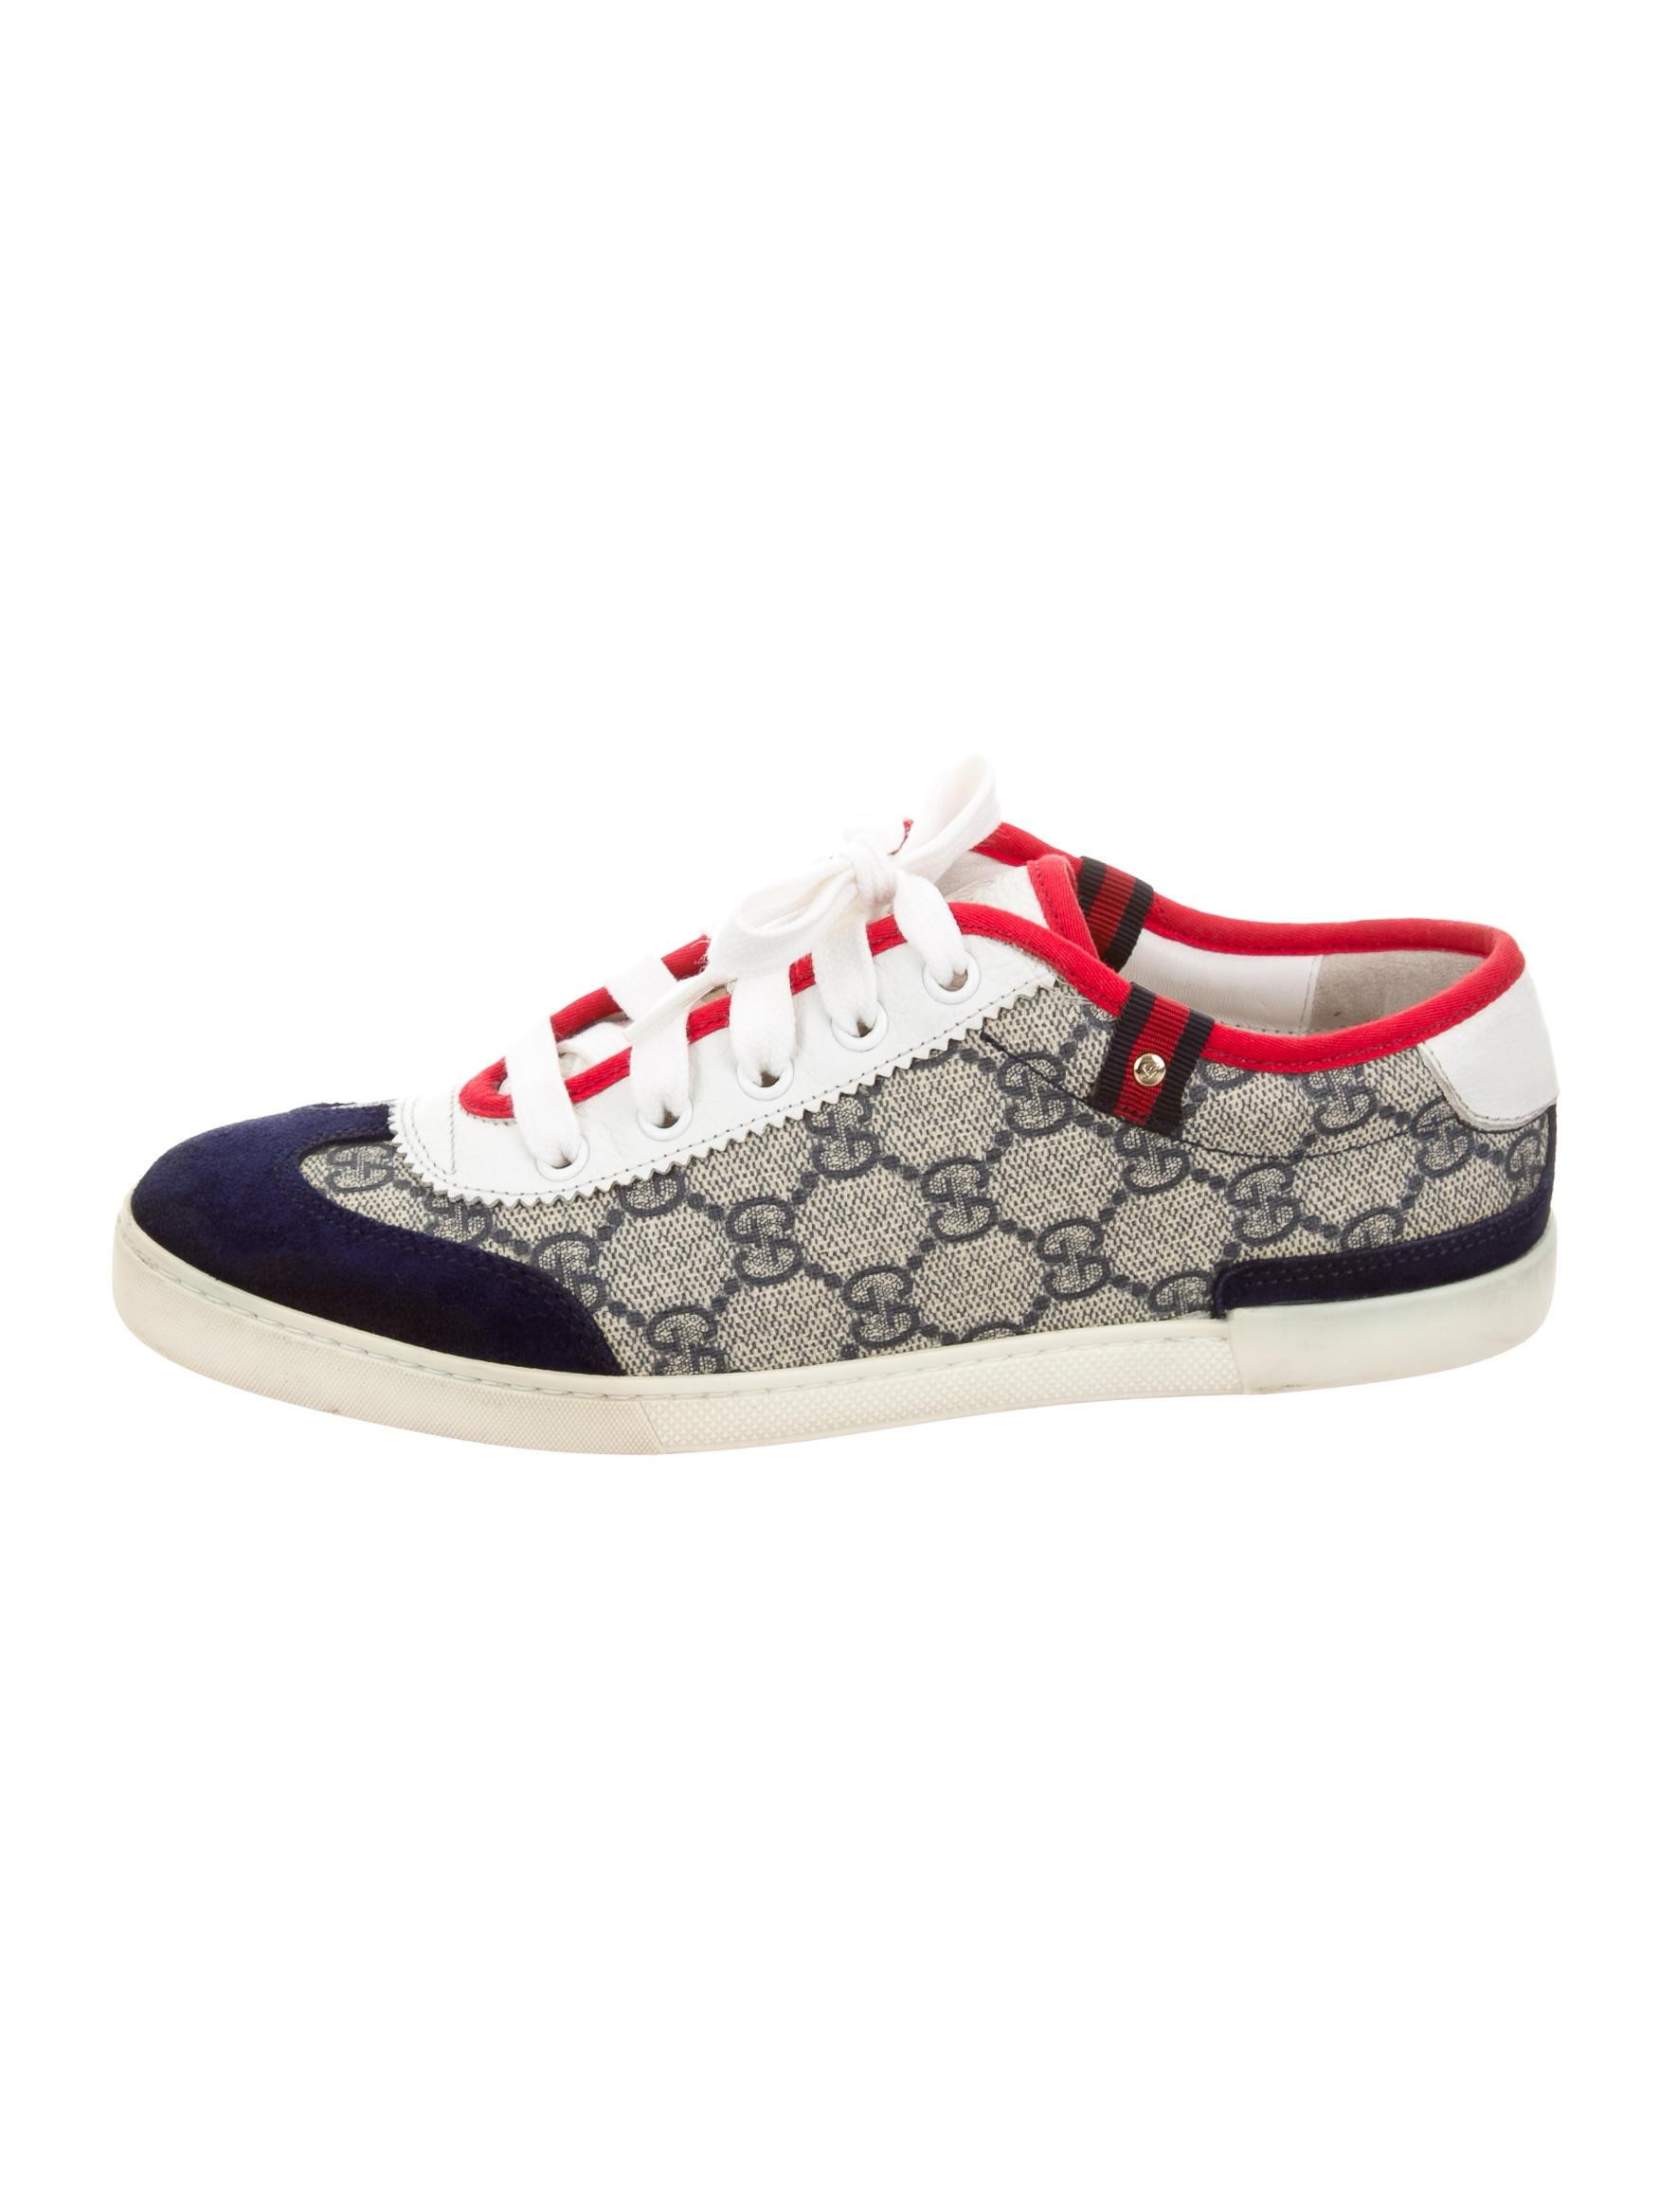 gucci sneaker blue white red women athletic shoes